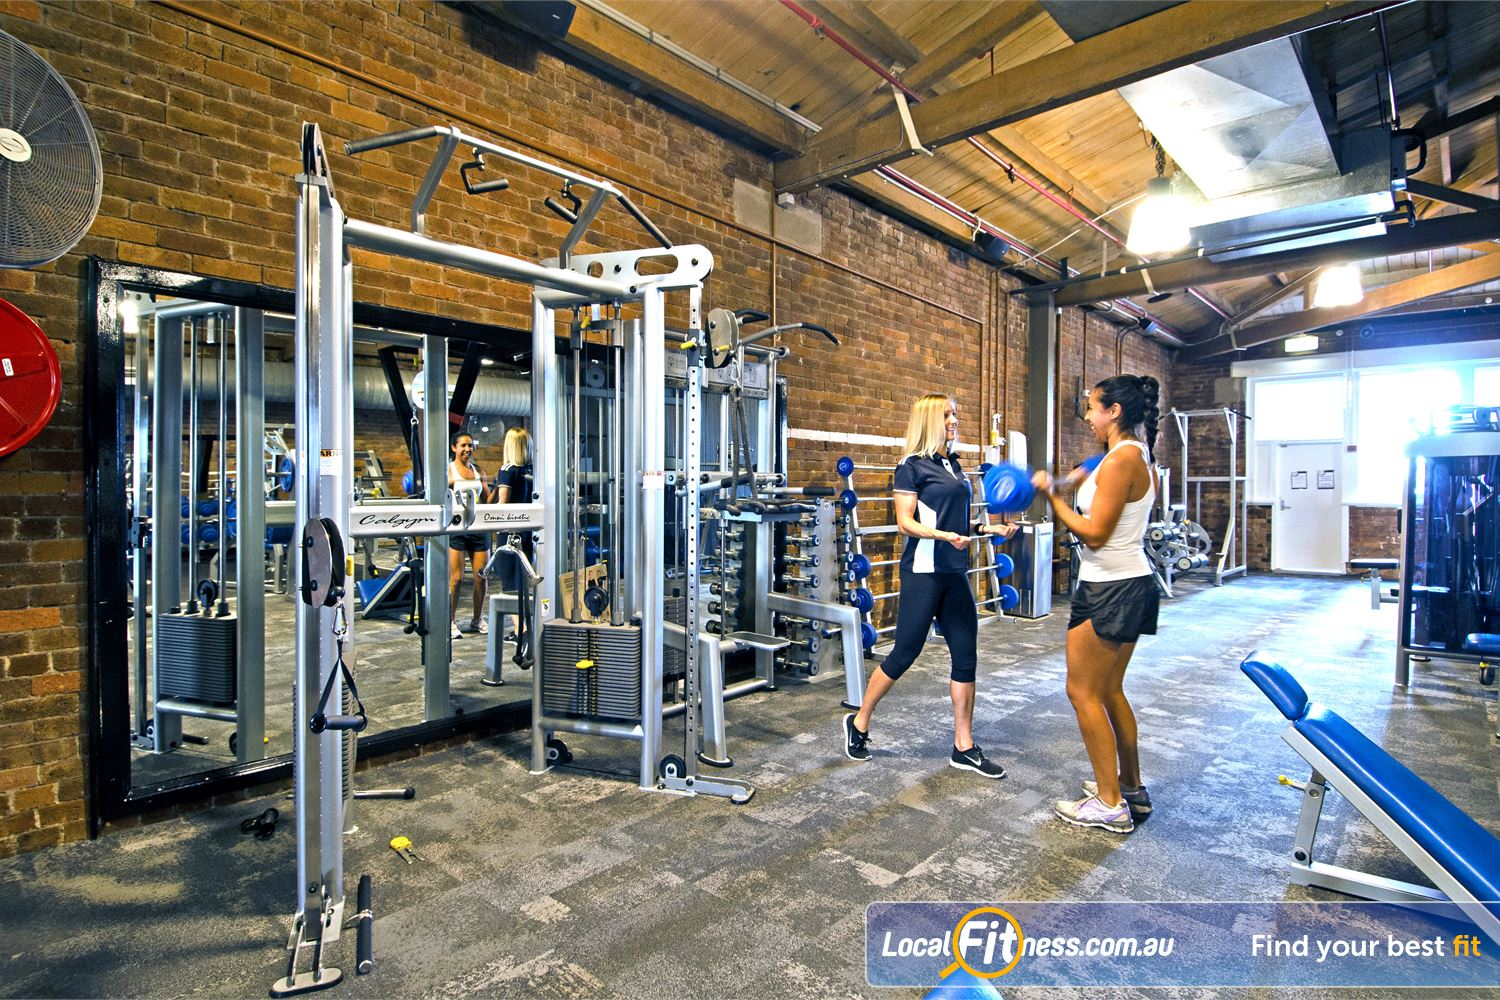 Goodlife Health Clubs Edward St Brisbane Our Brisbane gym is located in a 3 storey heritage listed building providing a unique atmosphere.